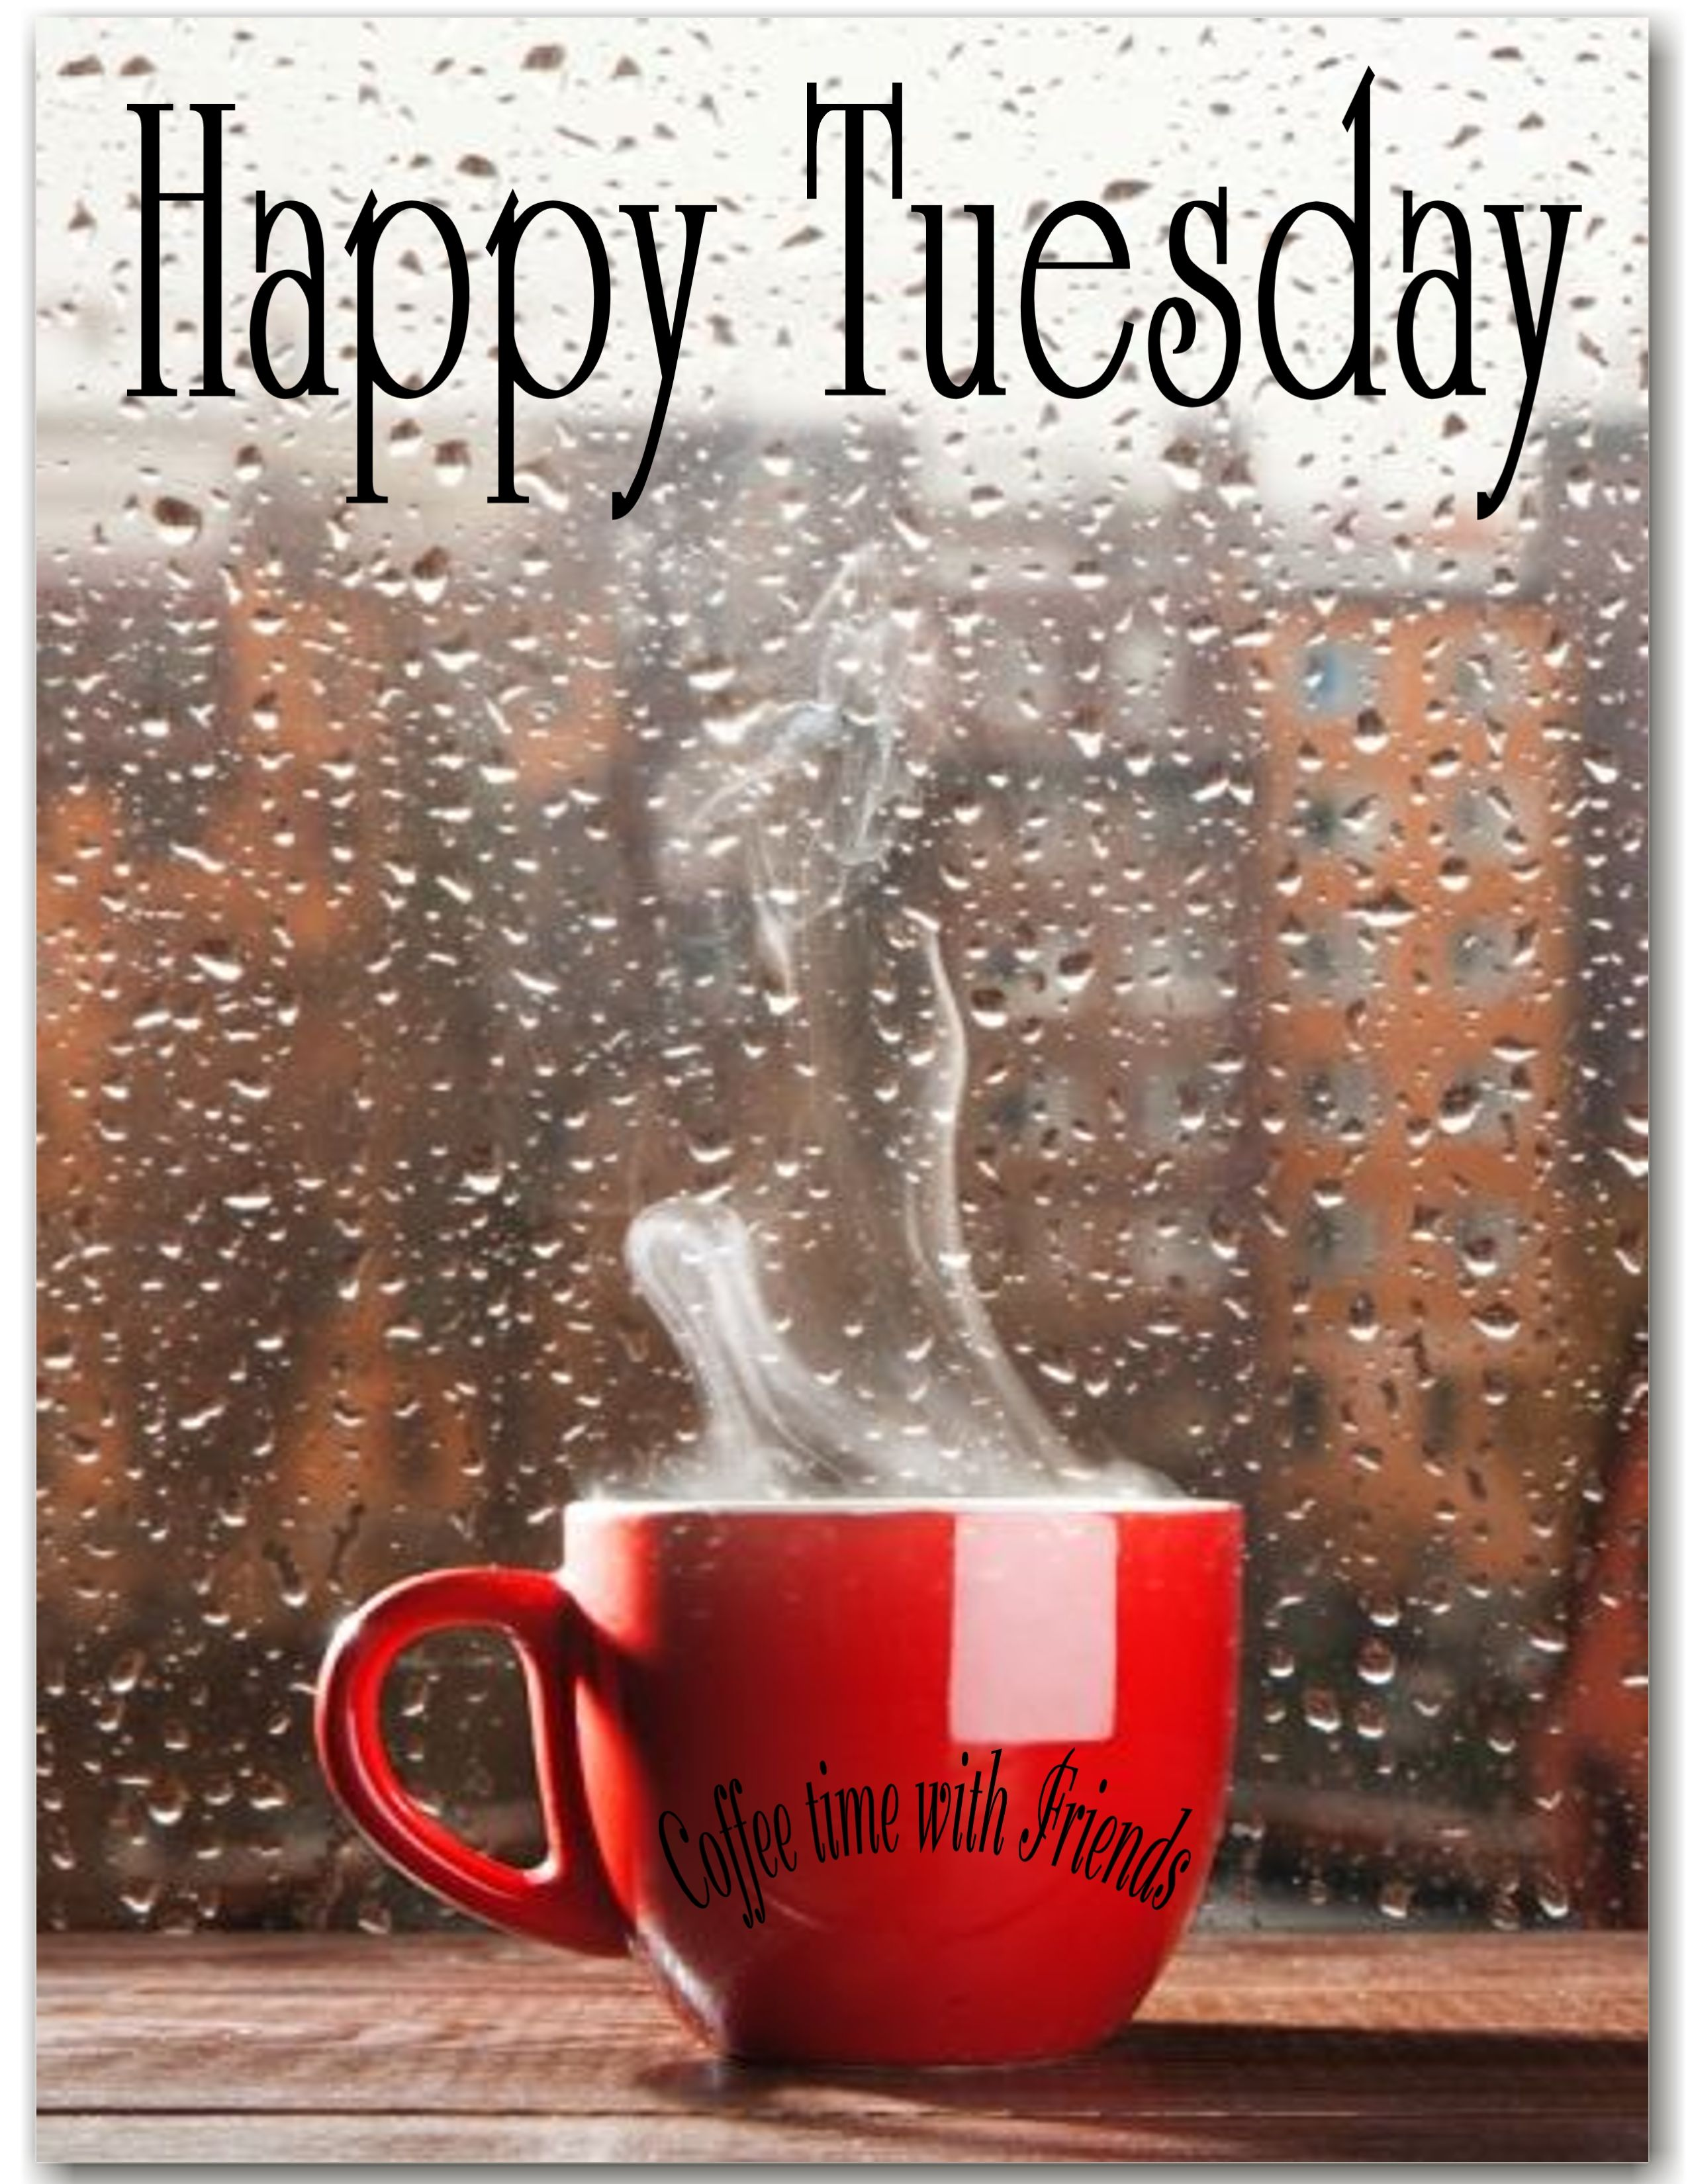 Pin By Coffee Time With Friends On Weekdays Tuesday Quotes Good Morning Happy Tuesday Morning Rainy Morning Quotes